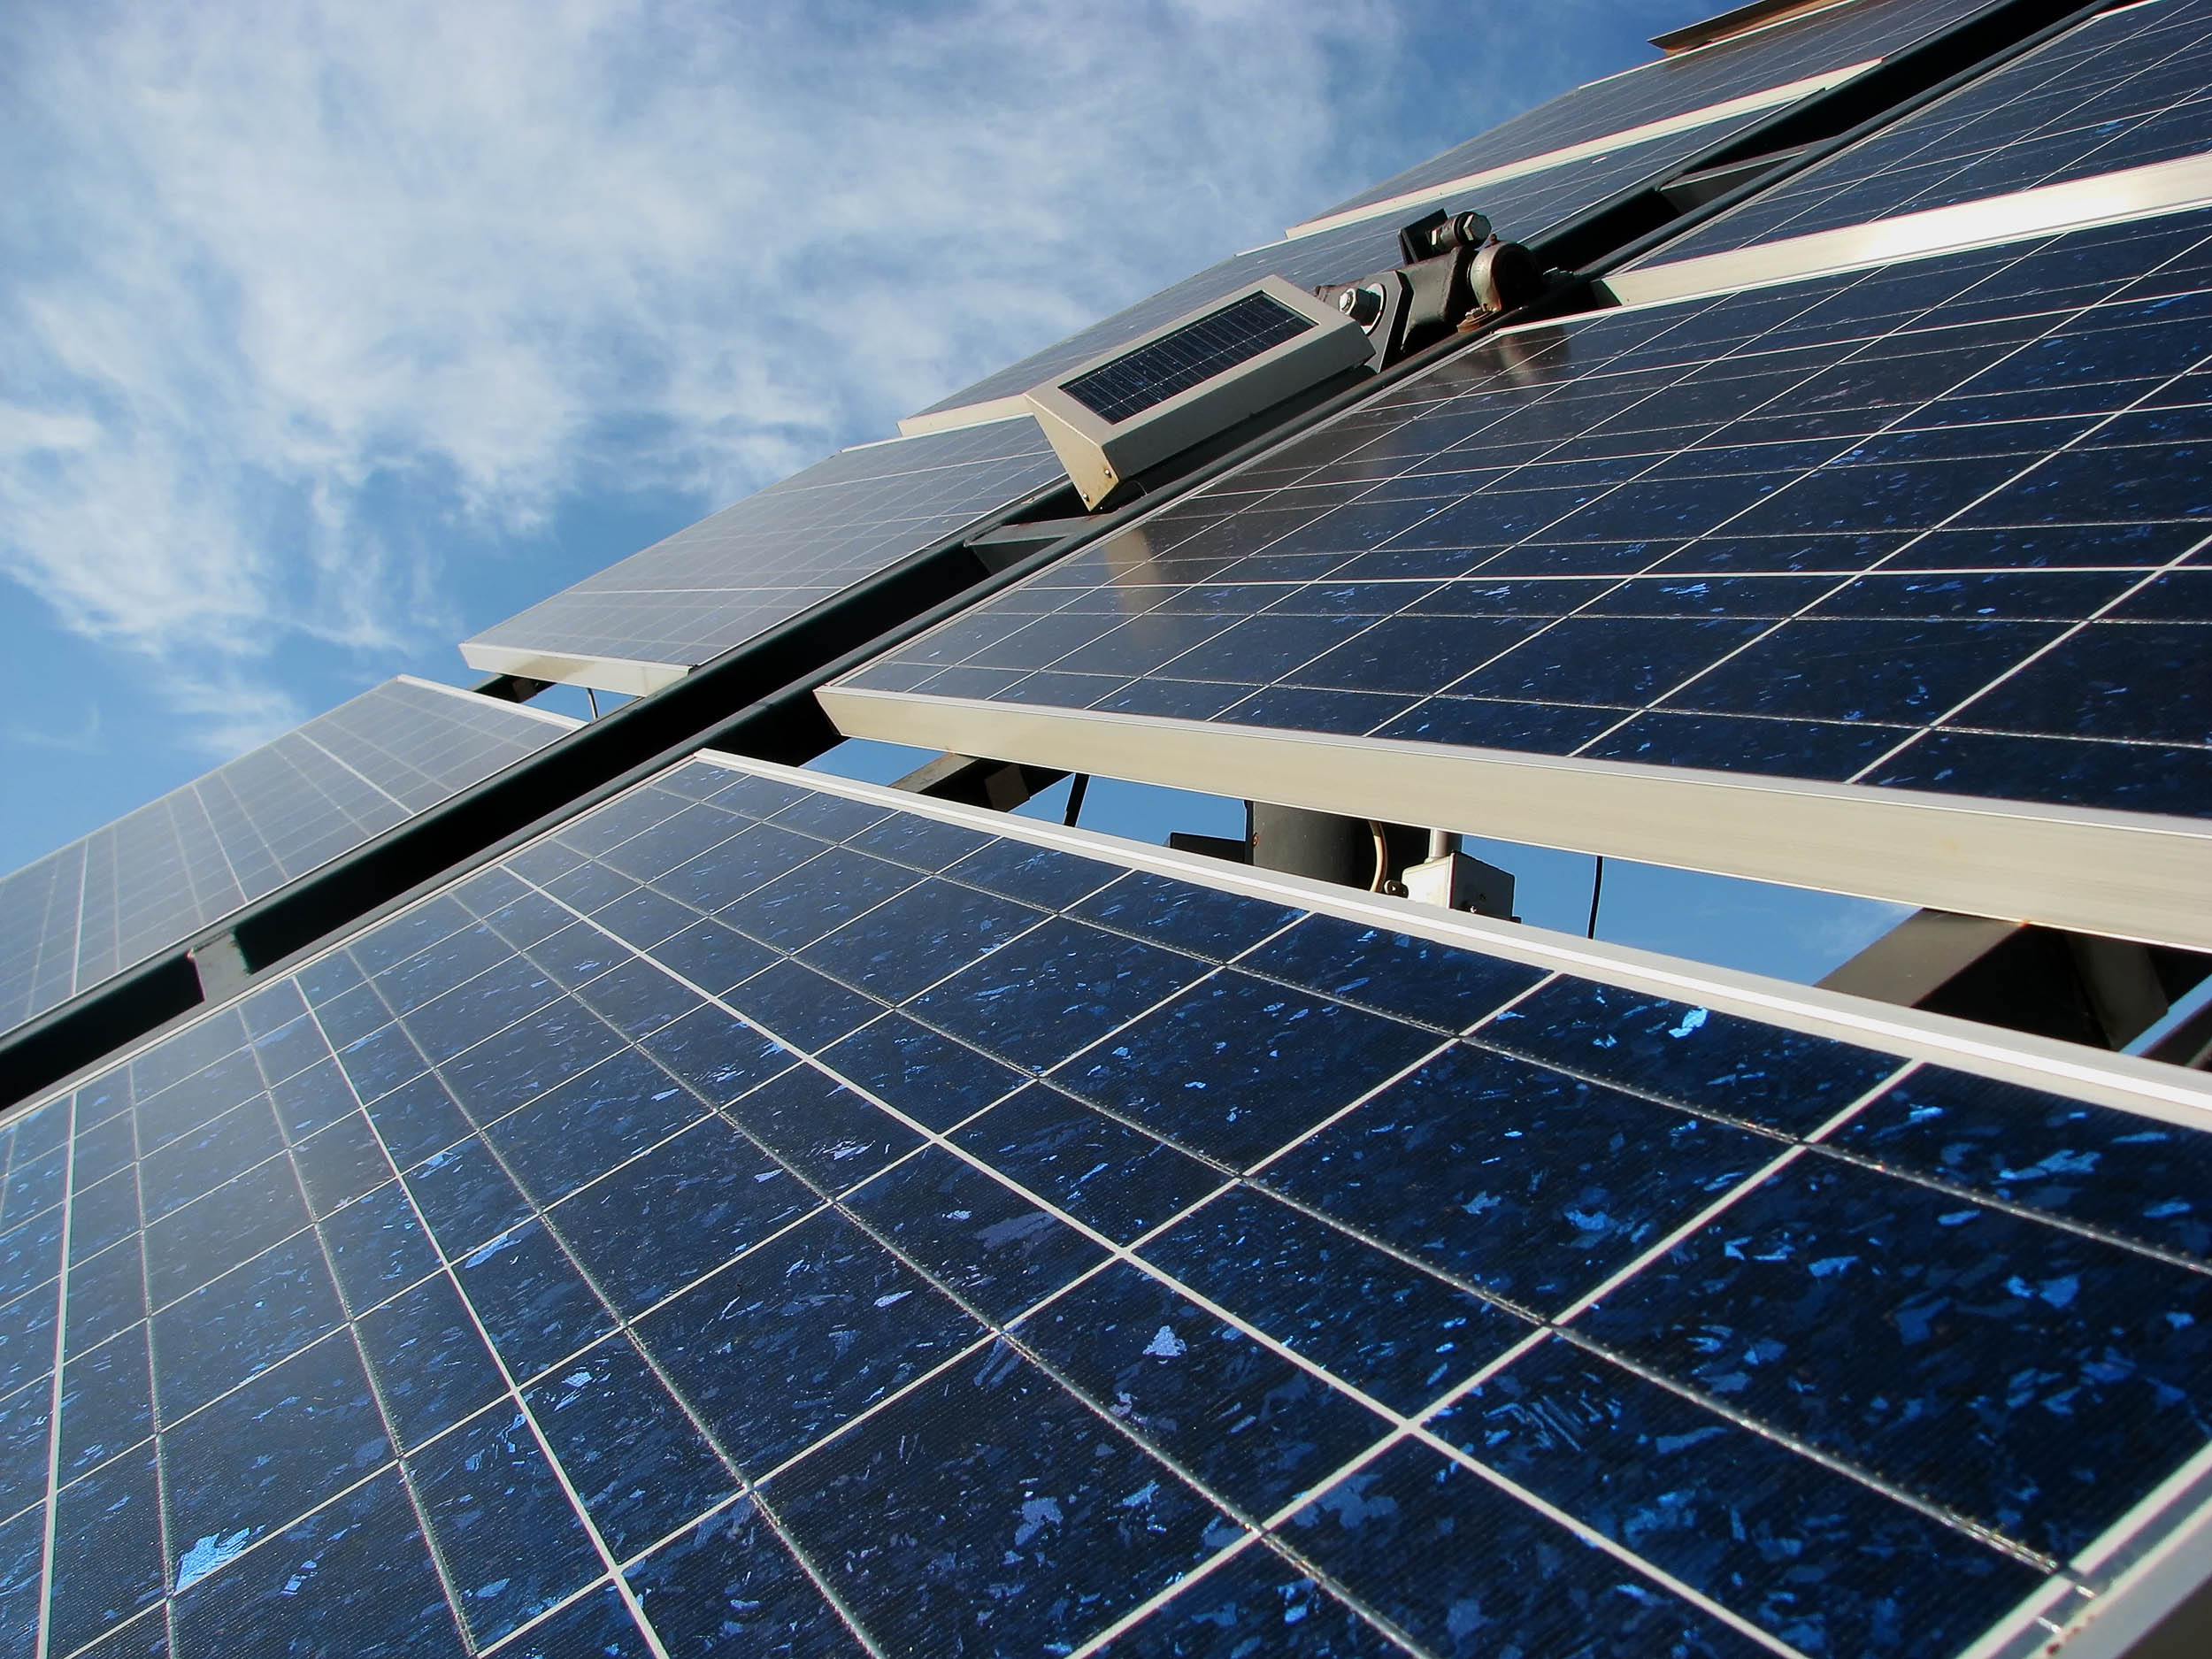 Whats The Best Placement Of Solar Panels Clean Energy Ideas Note On Panel Installation Calculation About No